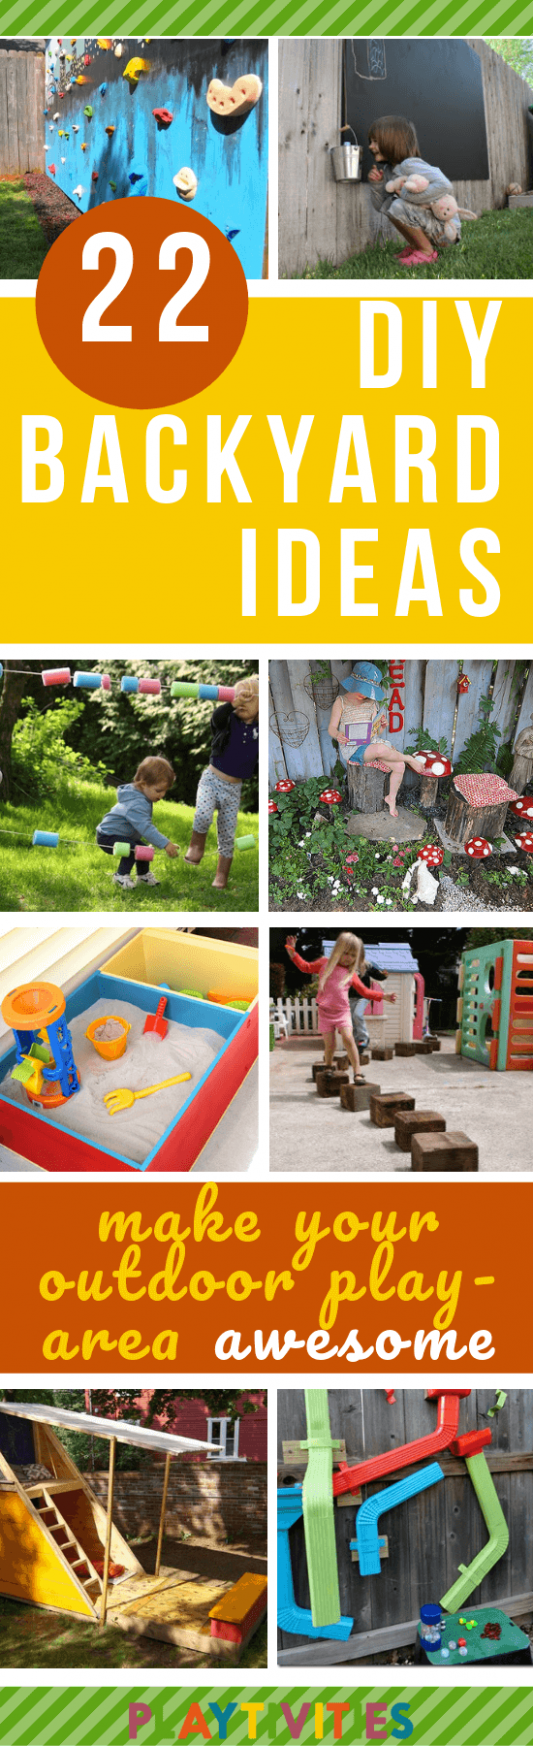 DIY Backyard Ideas For Kids - 10 Easy and Cheap Ideas - PLAYTIVITIES